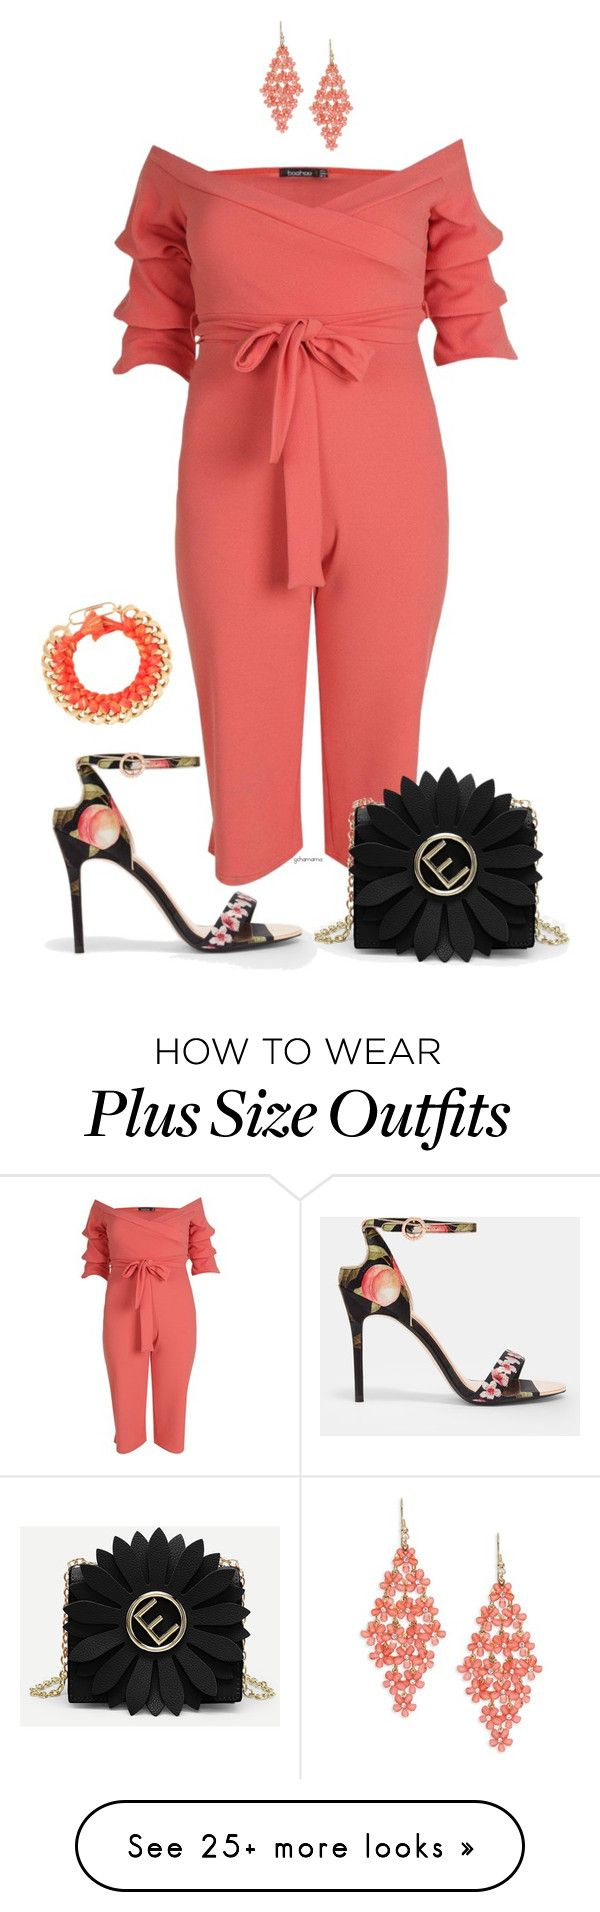 """""""Peach blossom- plus size"""" by gchamama on Polyvore featuring Ted Baker, Design Lab and Aurélie Bidermann"""